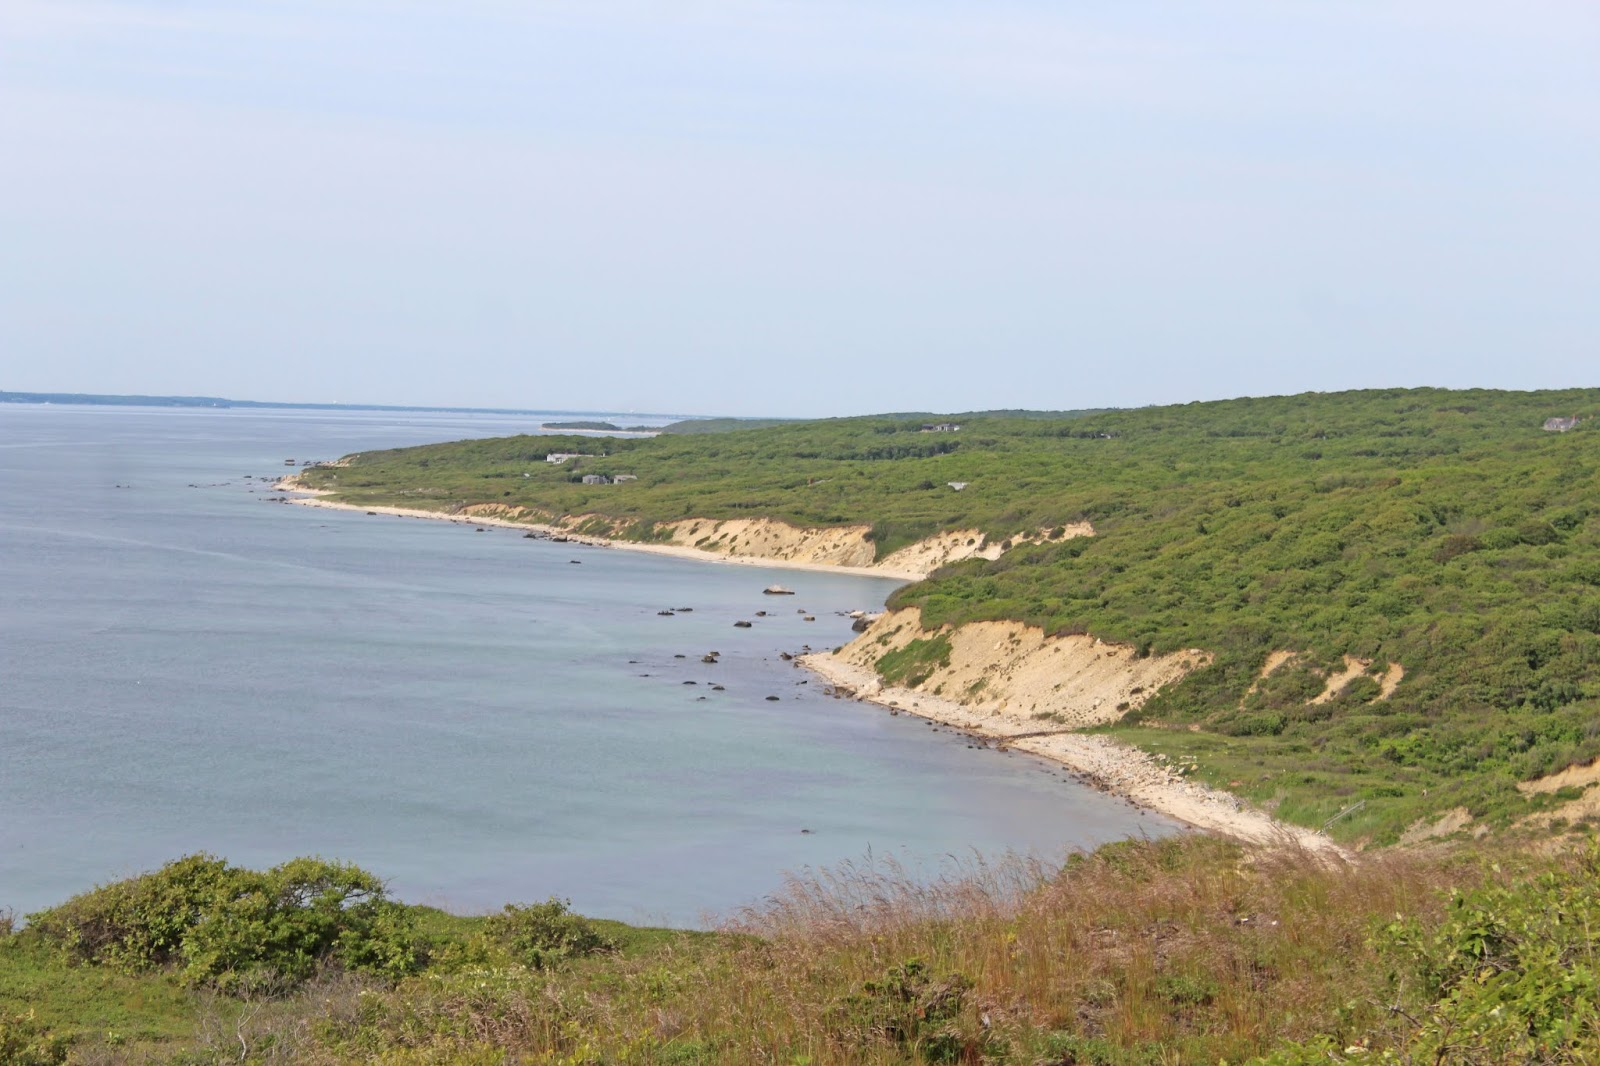 hiking to a secluded beach 4